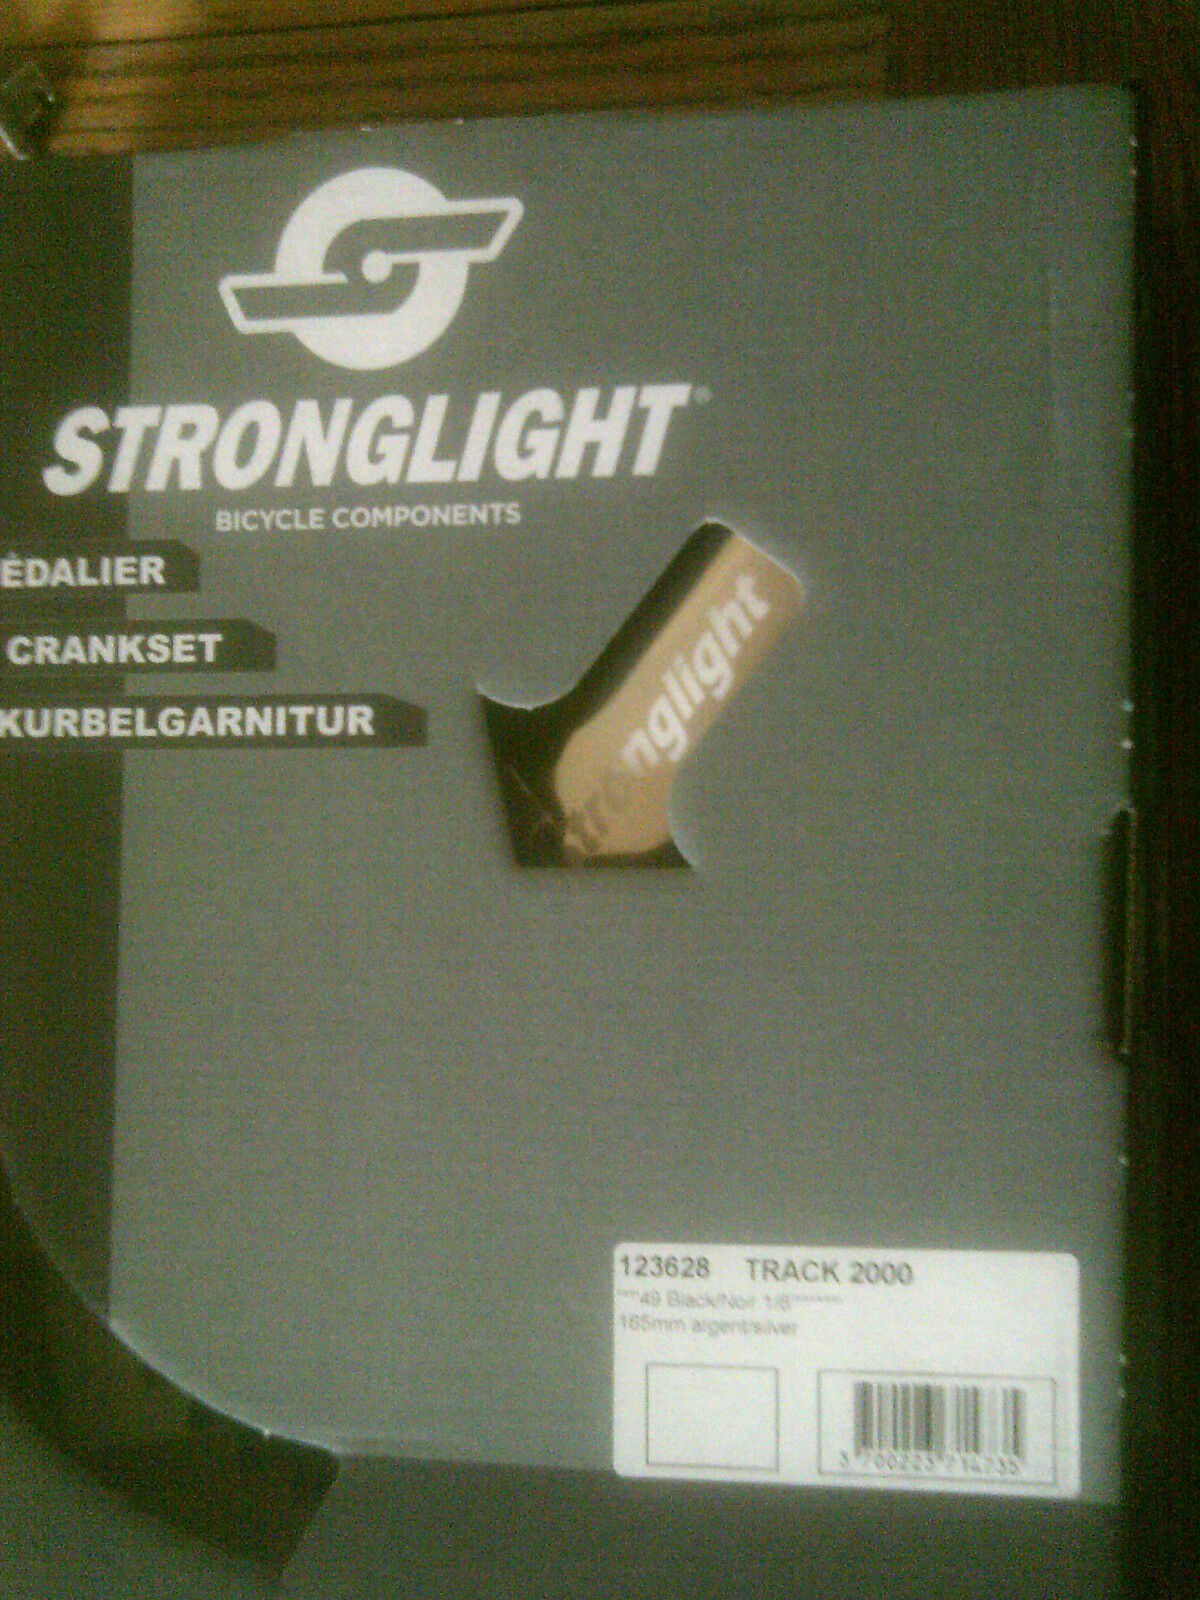 STRONGLIGHT TRACK 2000 CHAINSET, PISTA 165mm